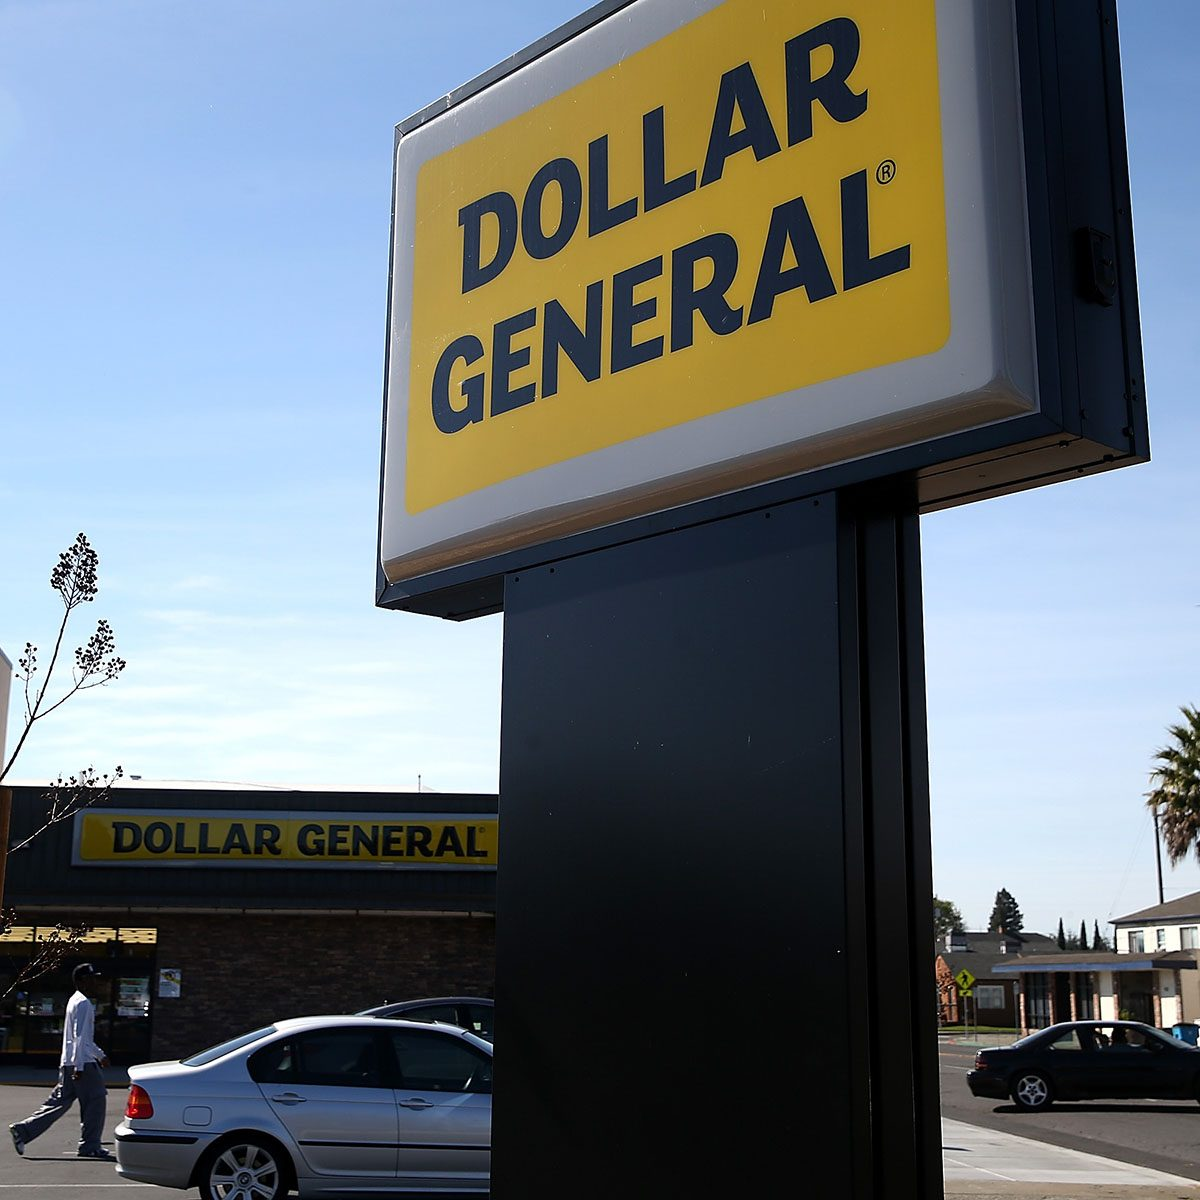 VALLEJO, CA - MARCH 12: A sign is posted in front of a Dollar General store on March 12, 2015 in Vallejo, California. Dollar General Stores Inc. announced plans to open over 700 new stores in 2015 in an attempt to improve on its position among discount retailers in the United States. (Photo by Justin Sullivan/Getty Images)